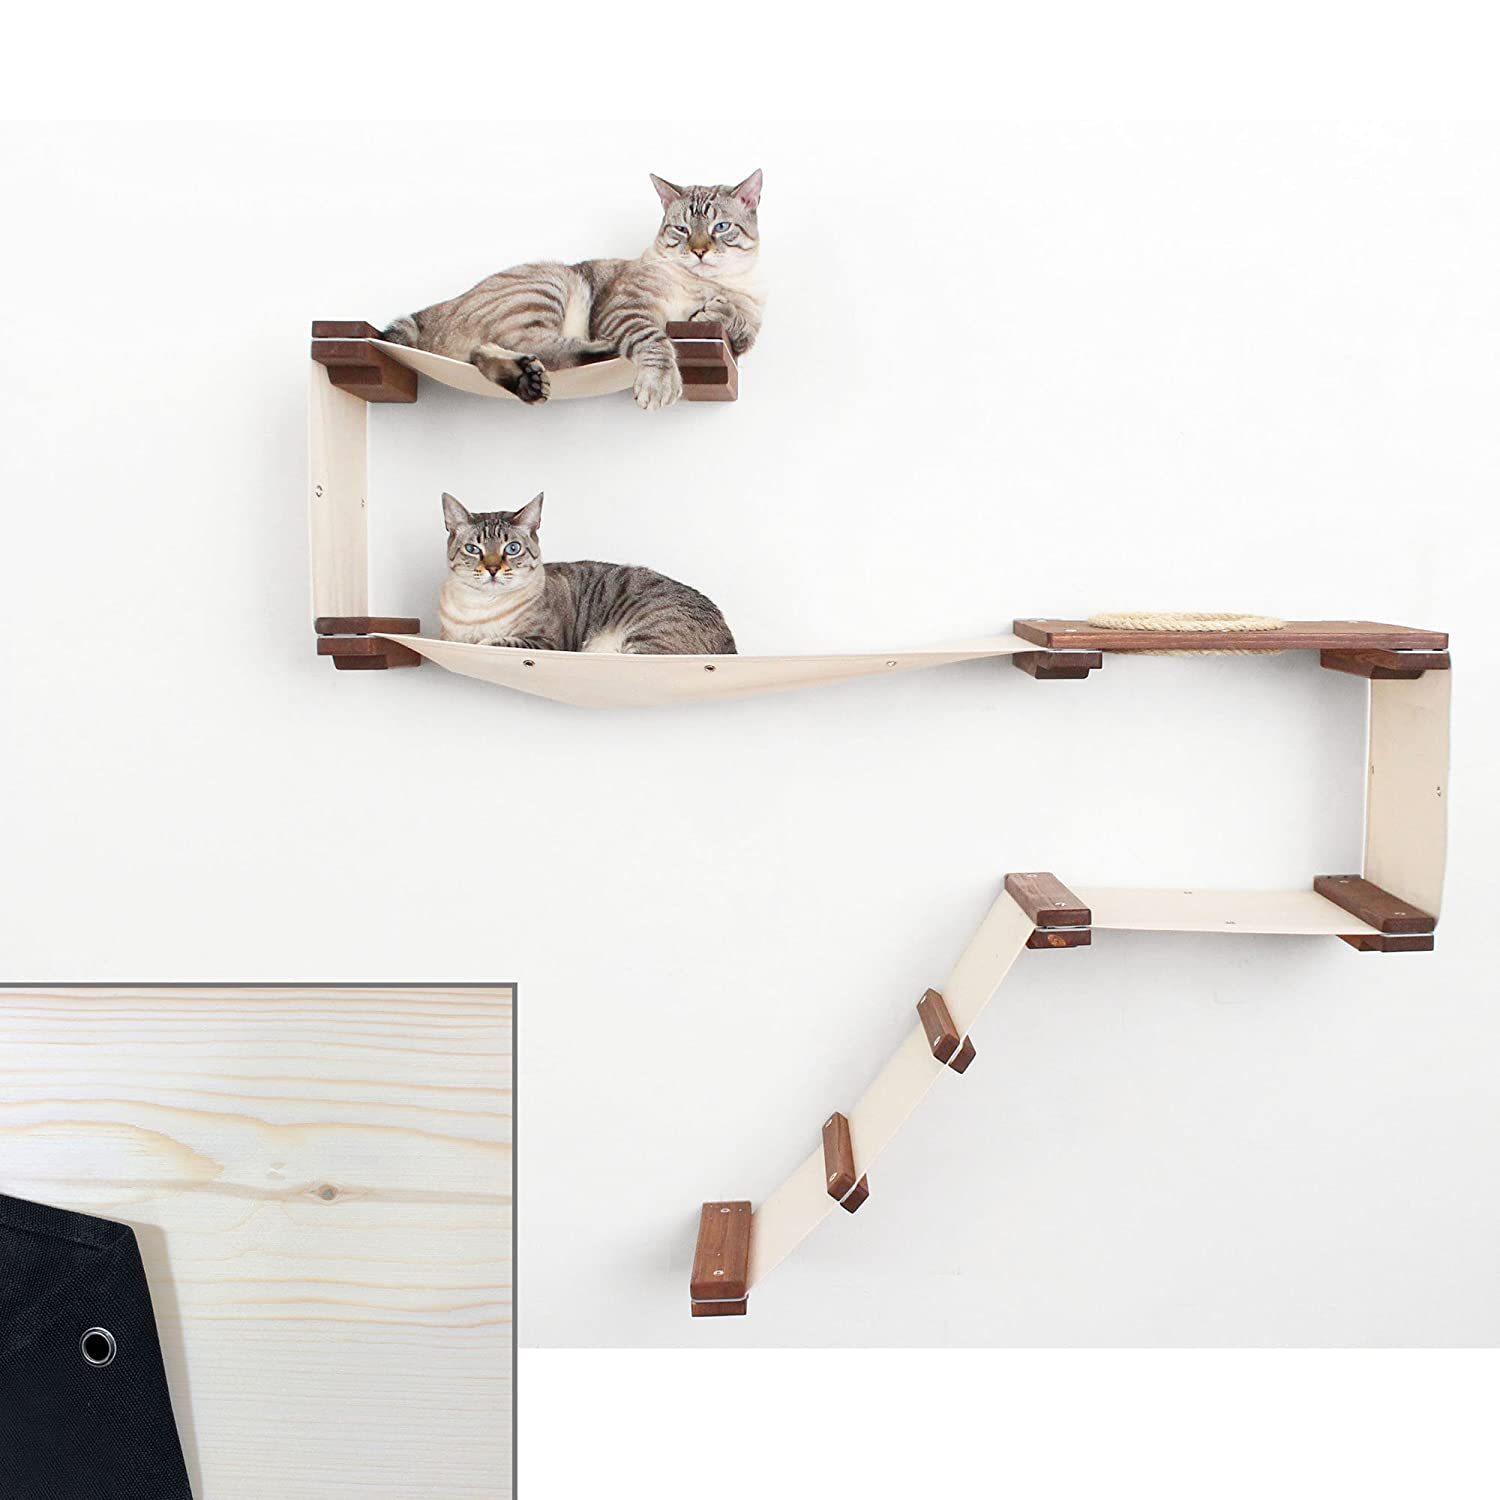 Unfinished   Black CatastrophiCreations Cat Mod Play Handcrafted Wall-Mounted Activity Cat Tree Shelves Unfinished Black